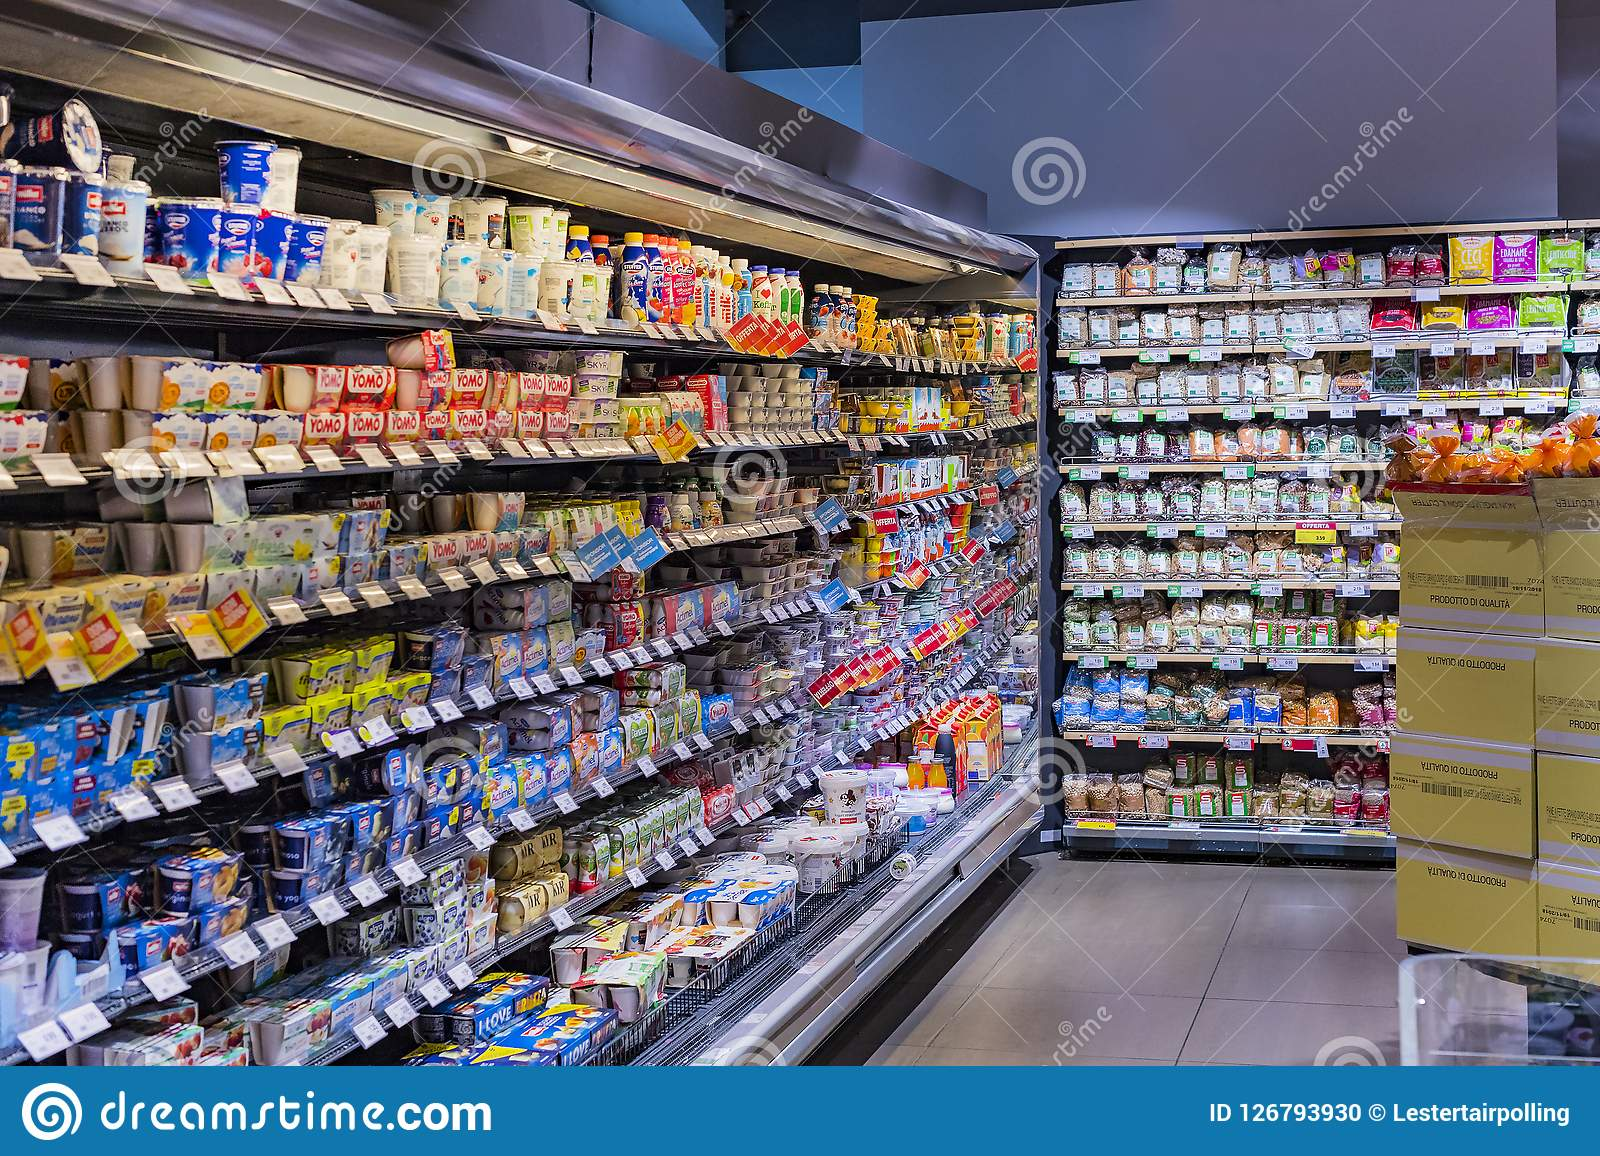 Shelves And Shelving With Products Of Drinks And Goods In